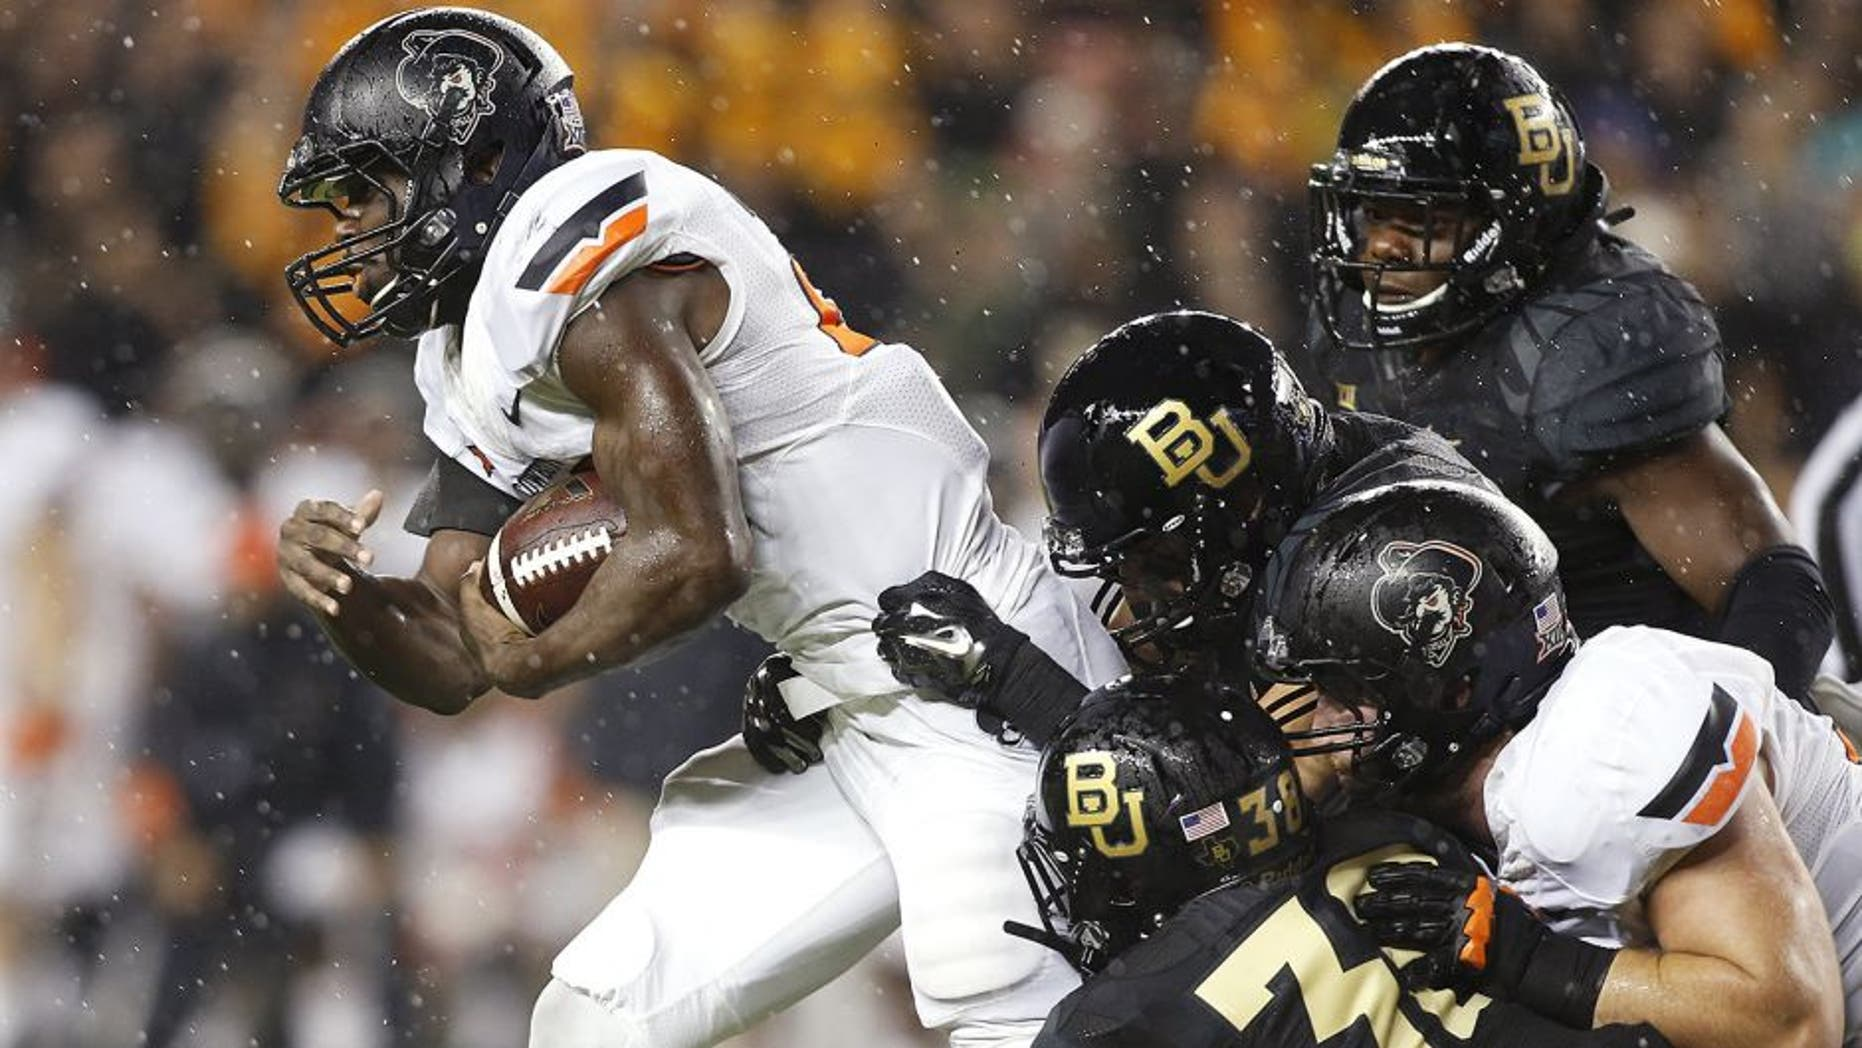 Nov 22, 2014; Waco, TX, USA; Oklahoma State Cowboys running back Rennie Childs (23) is gang tackled with the gal in the third quarter at McLane Stadium. Baylor beat Oklahoma State 49-28. Mandatory Credit: Tim Heitman-USA TODAY Sports